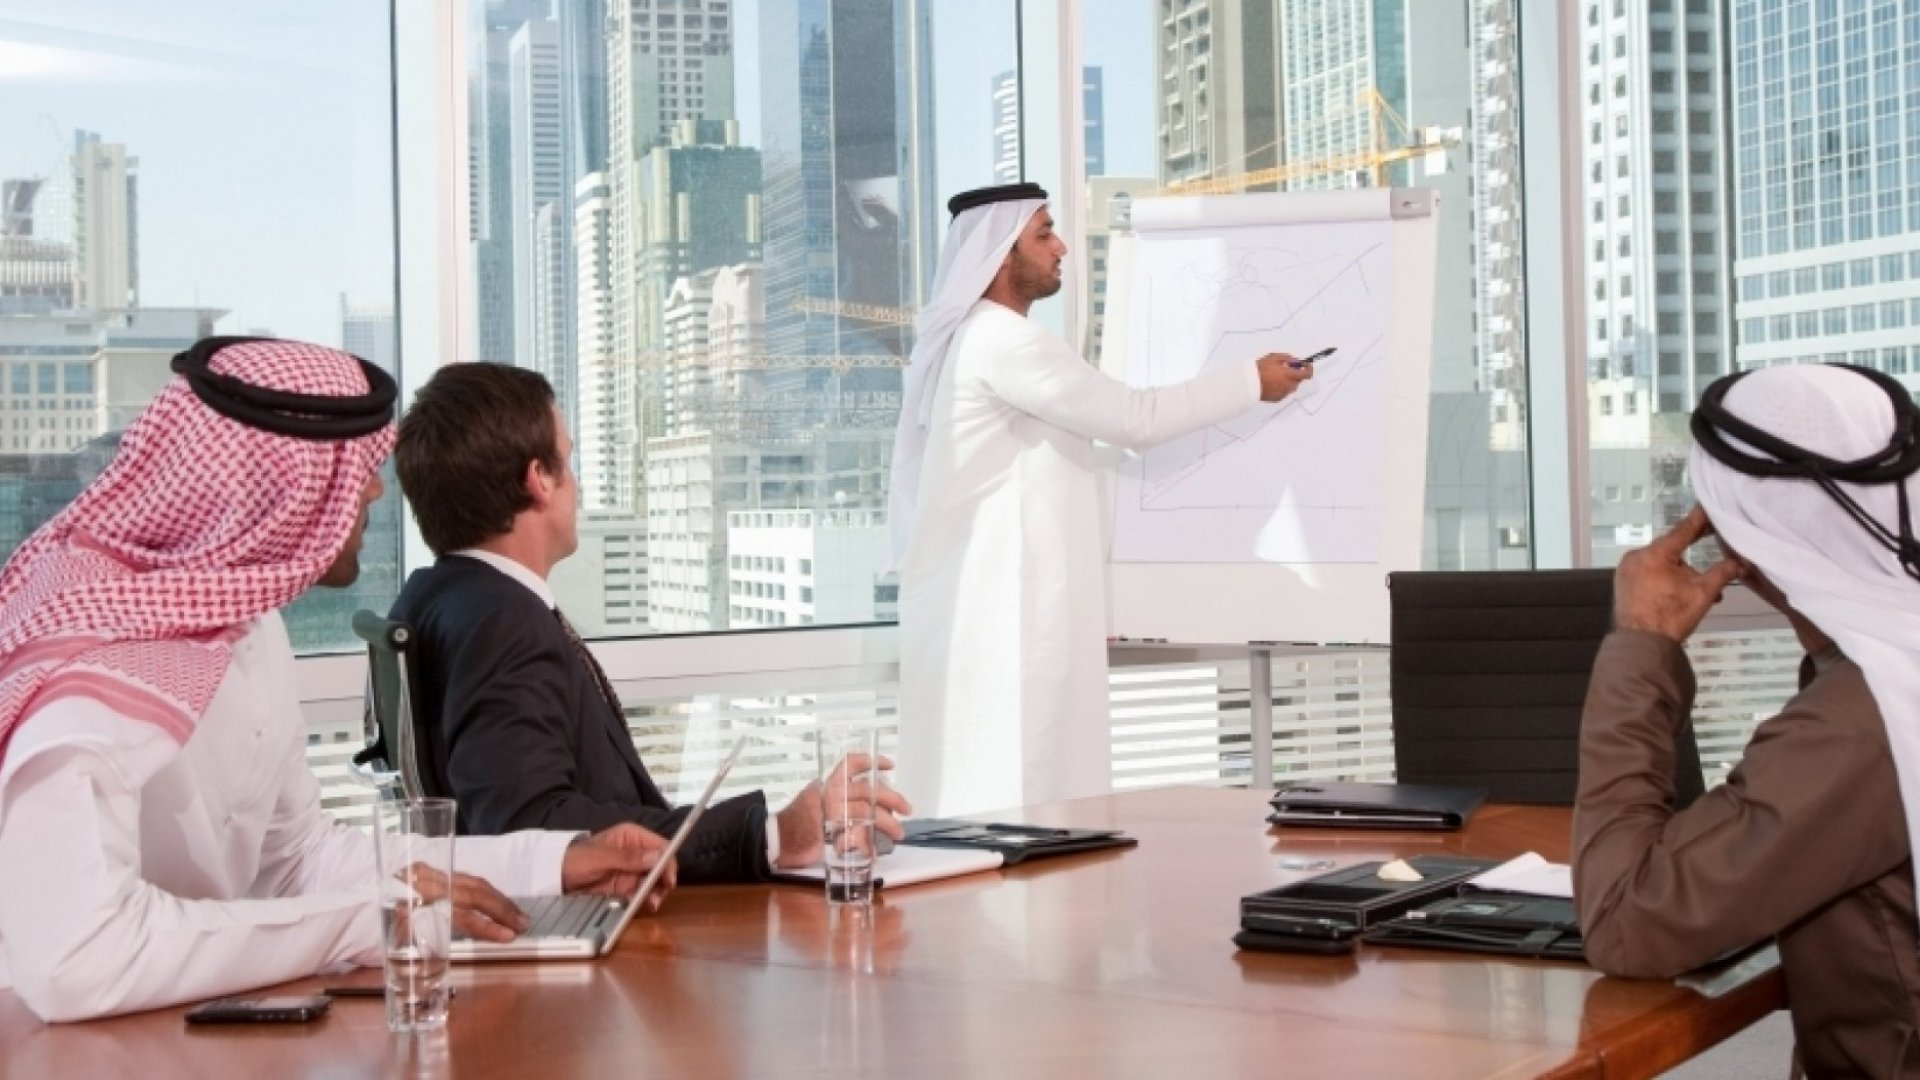 Entrepreneurship in the Middle East: New Land of Opportunity